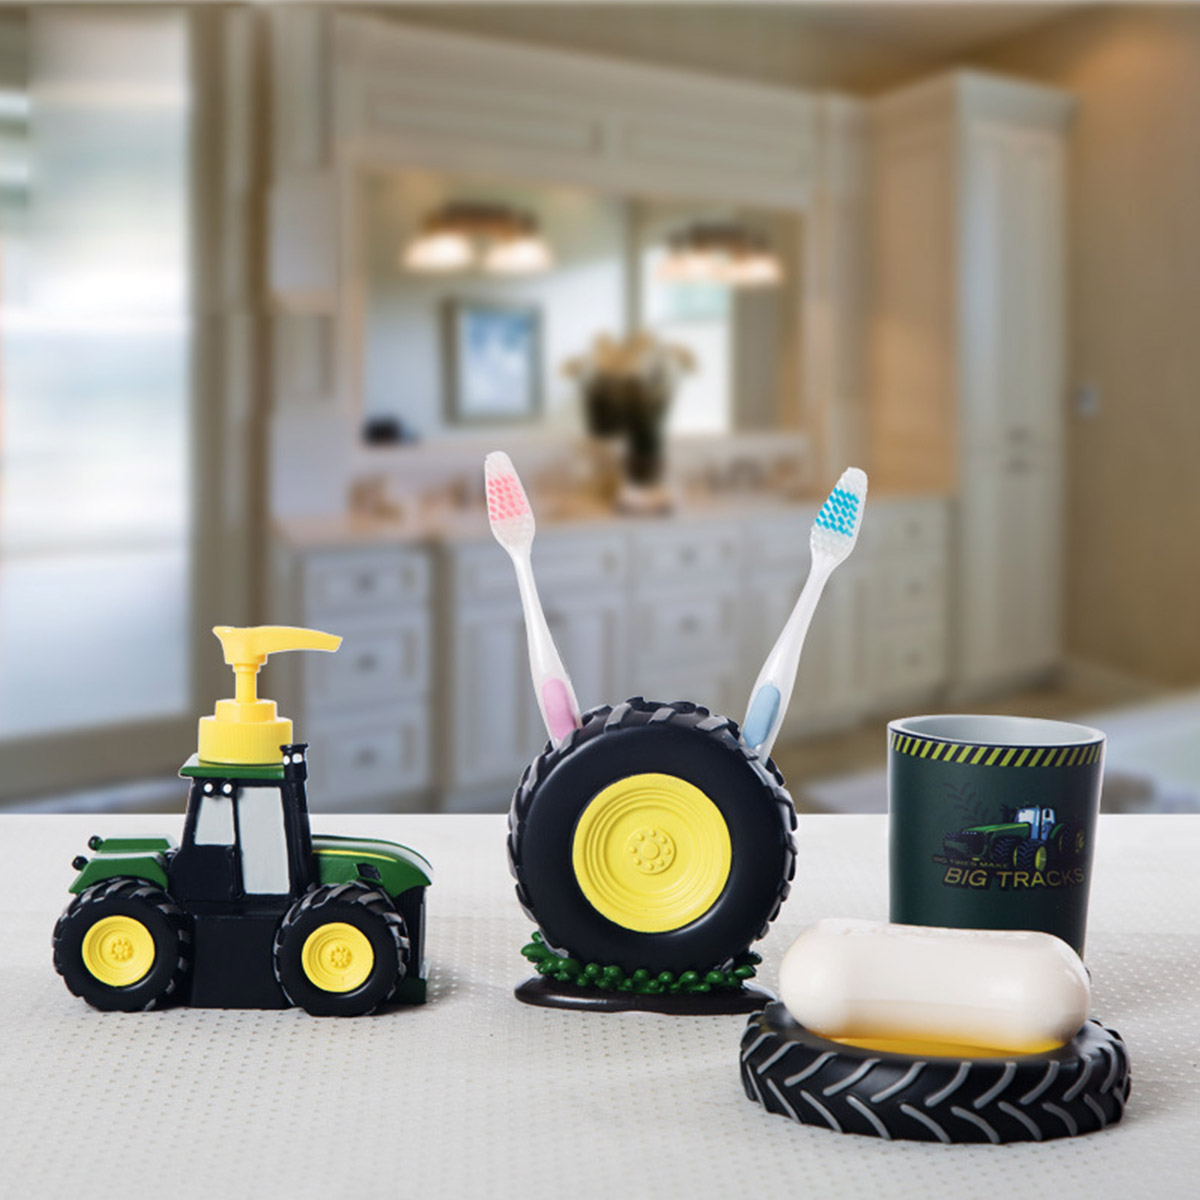 4 Pcs Kid Cartoon Bathroom Accessories Cute Tractor Bathroom Accessory Set Resin Wash Cup